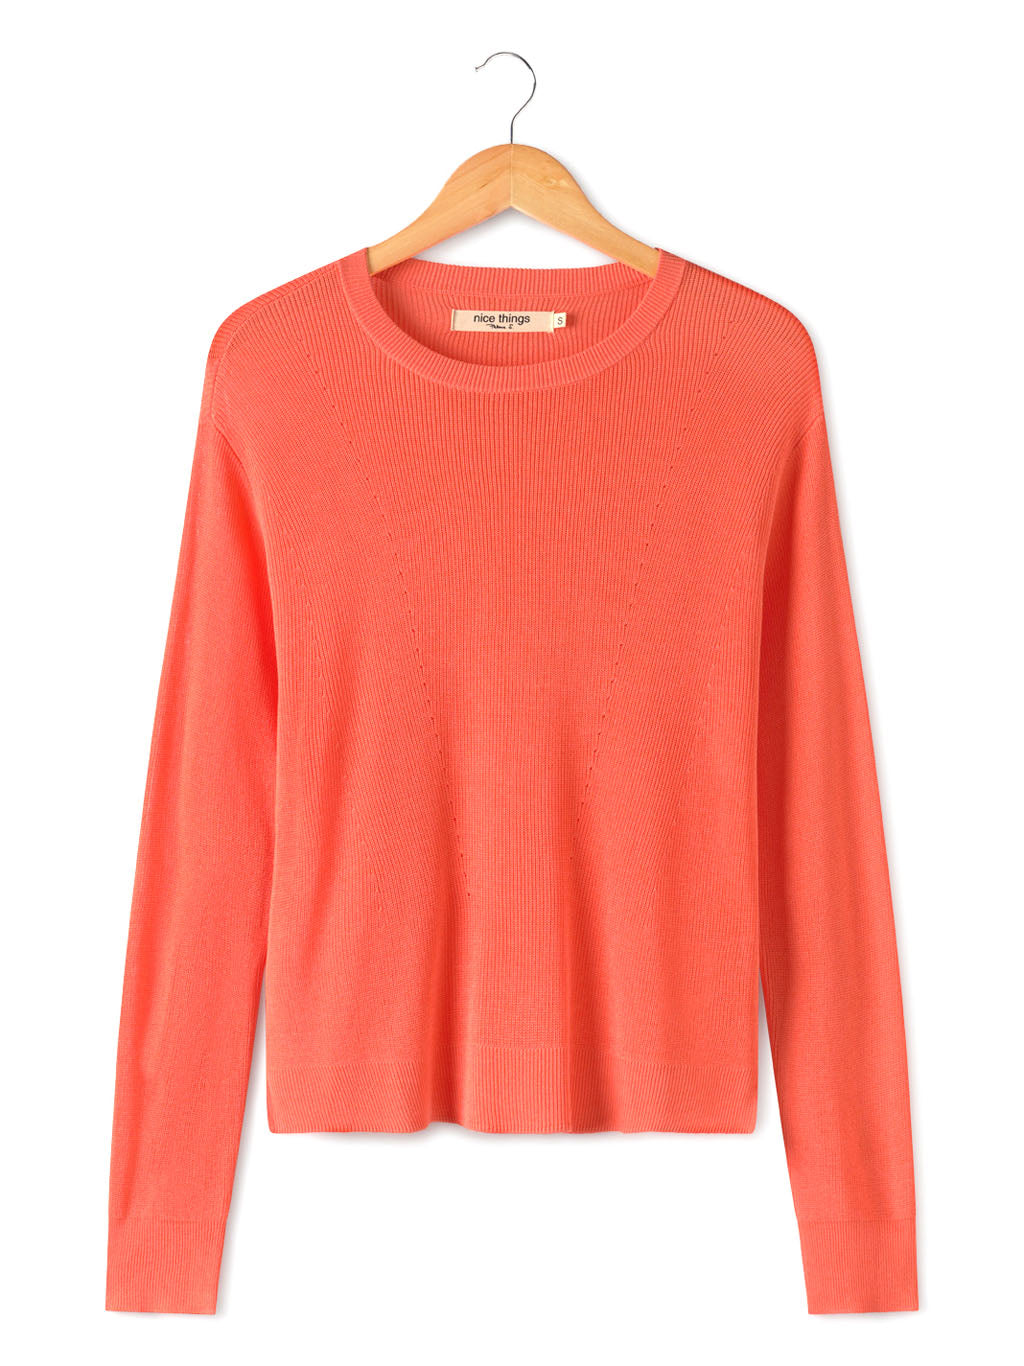 Nice Things Coral Sweater